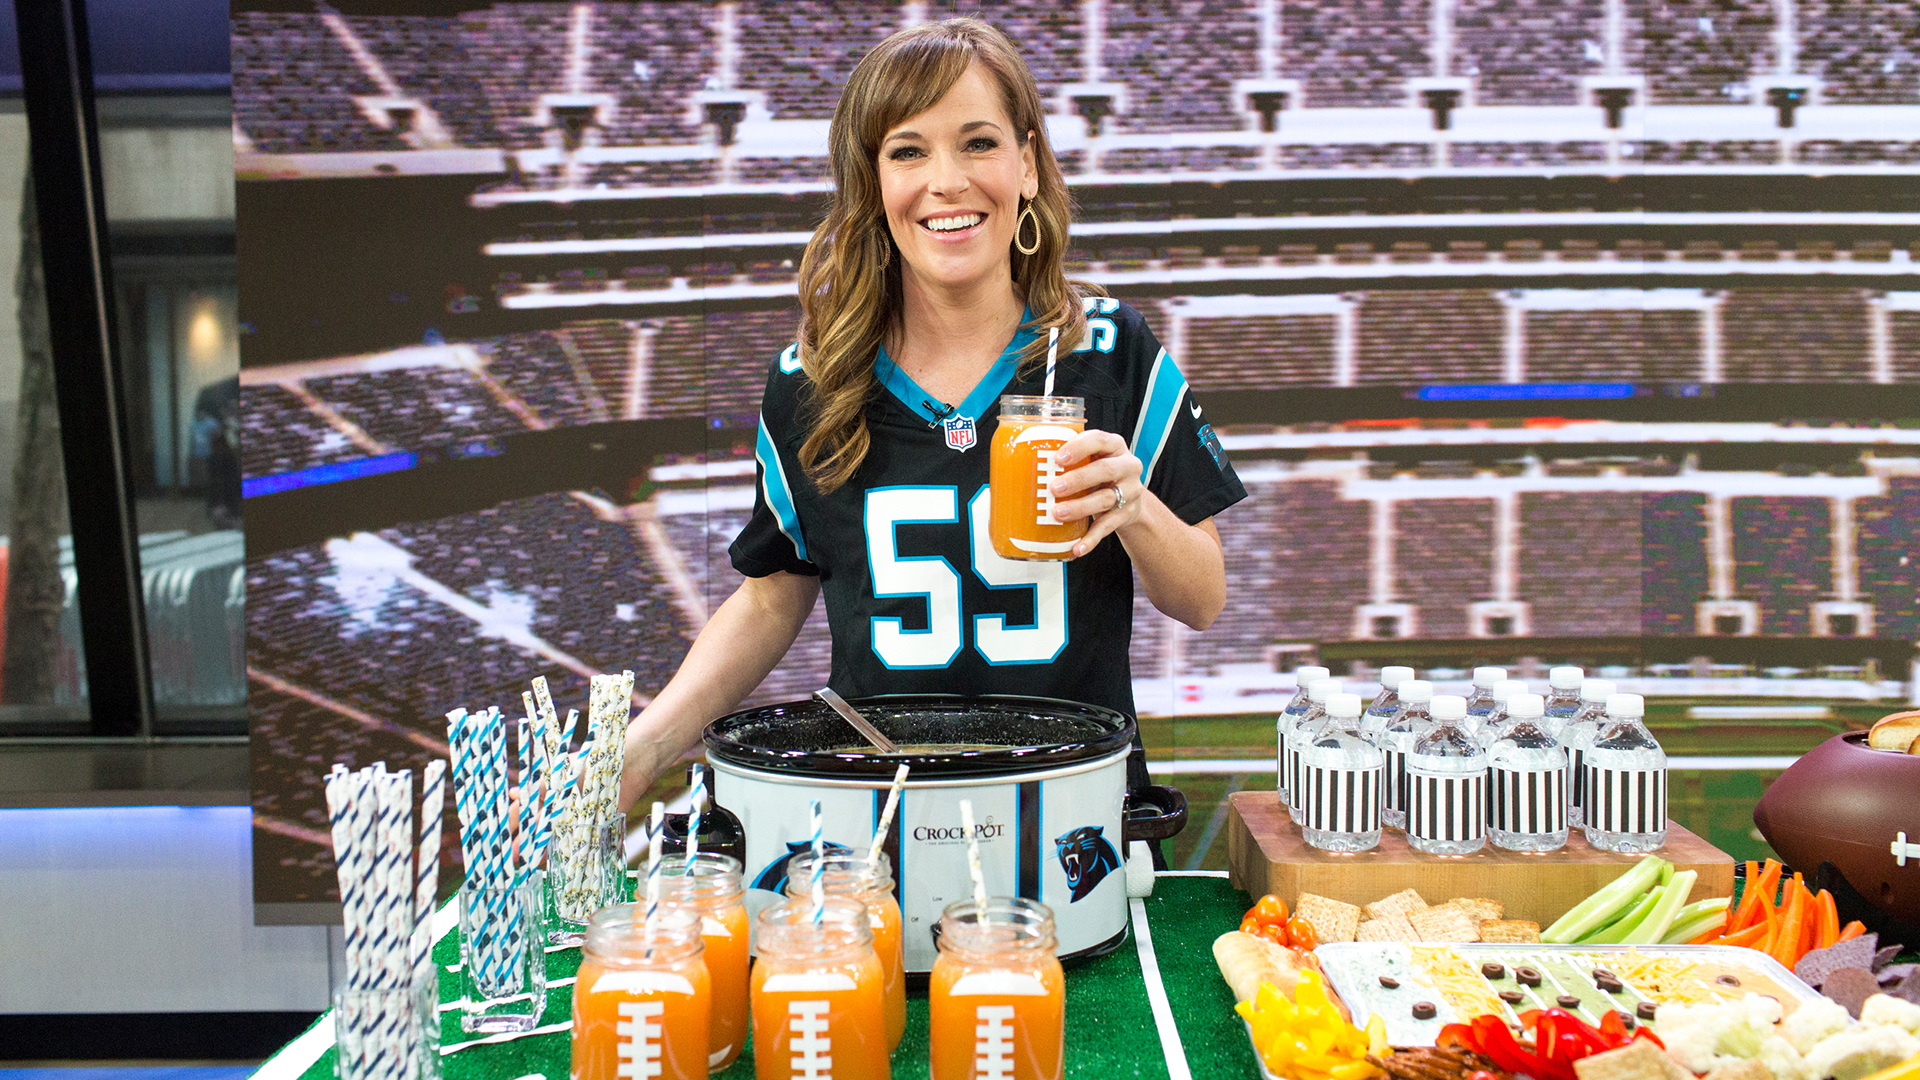 super bowl party ideas: from food to decor, here's how to nail your